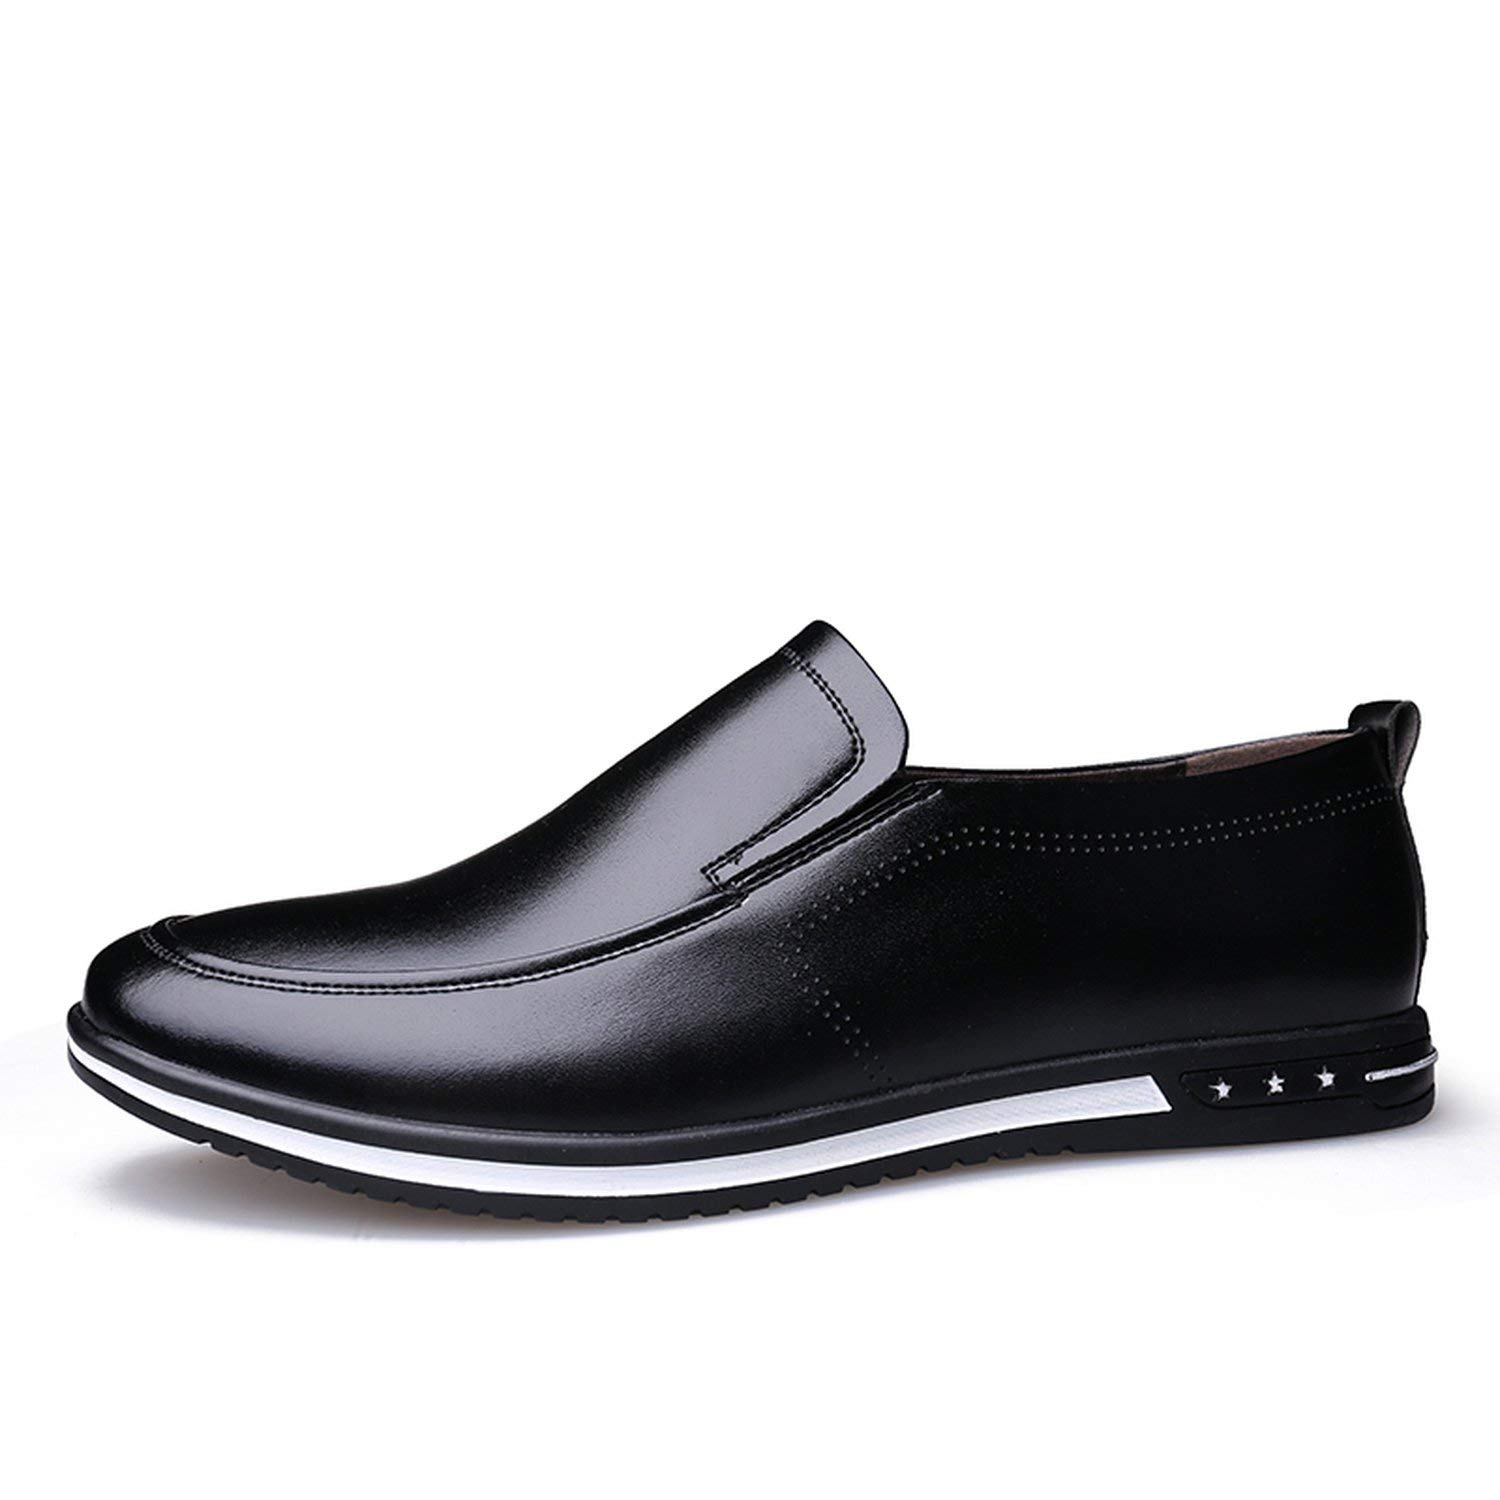 Black no hollow OH WHY Men's shoes Casual Leather Breathable Slip on Loafers Summer shoes Man Flat Driving shoes